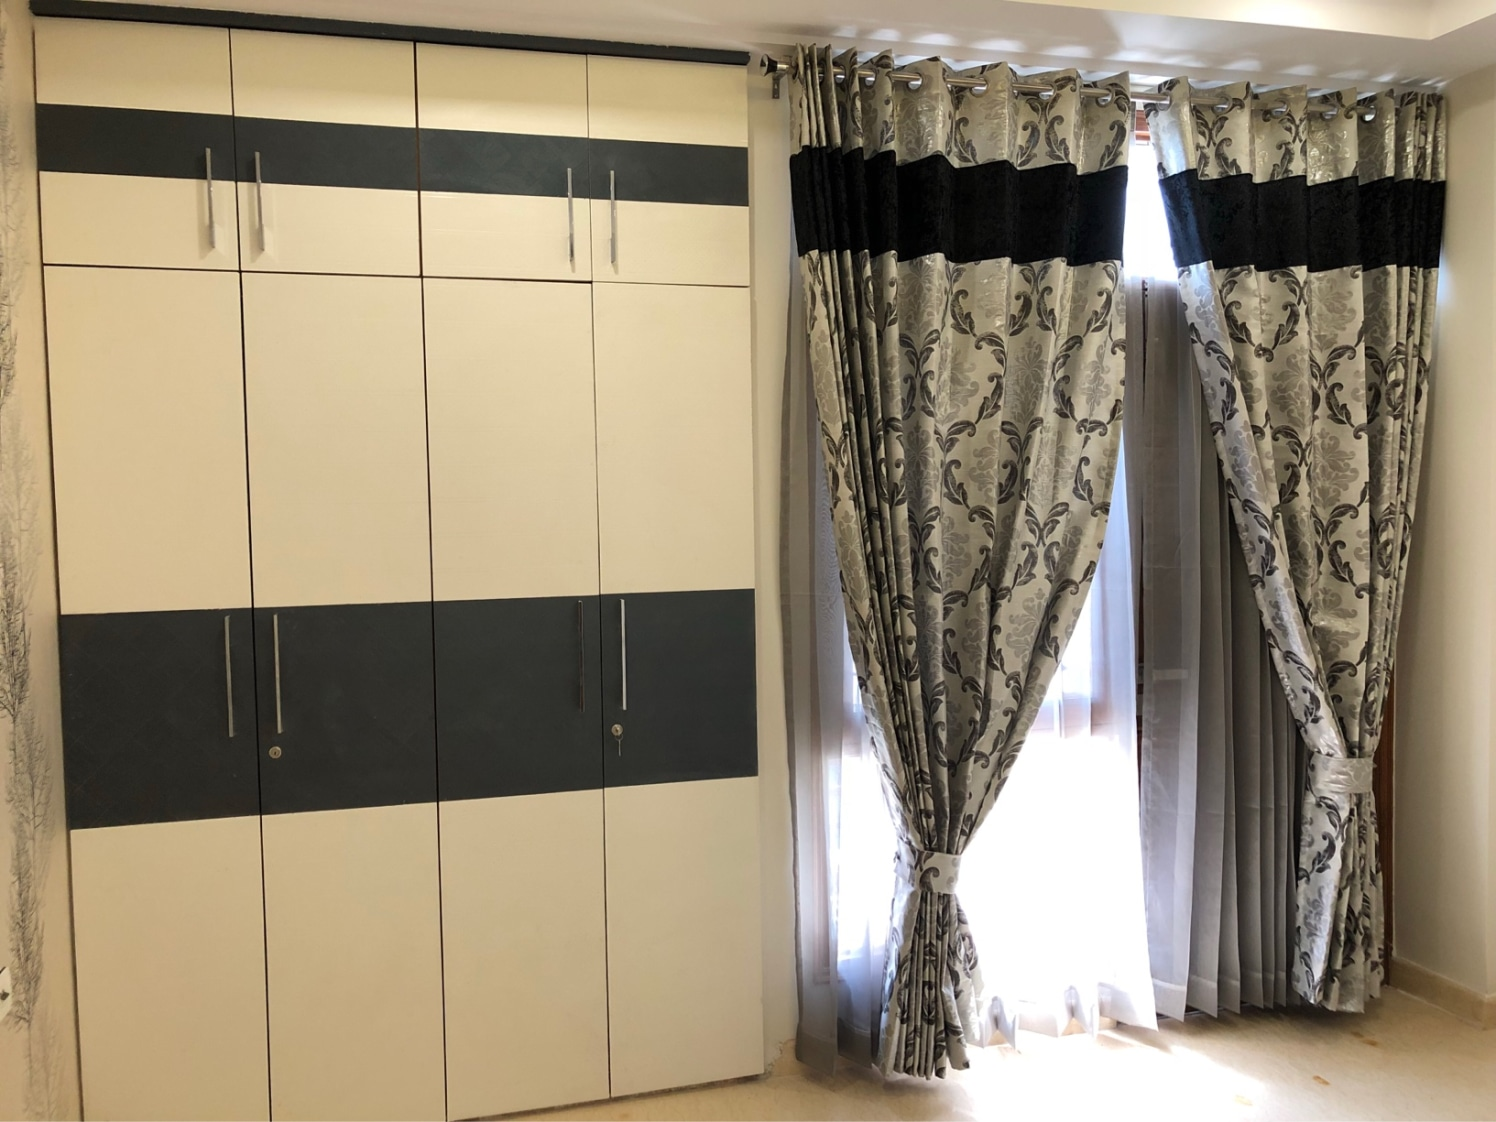 Wardrobe by Vaibhav gaba Bedroom Contemporary | Interior Design Photos & Ideas